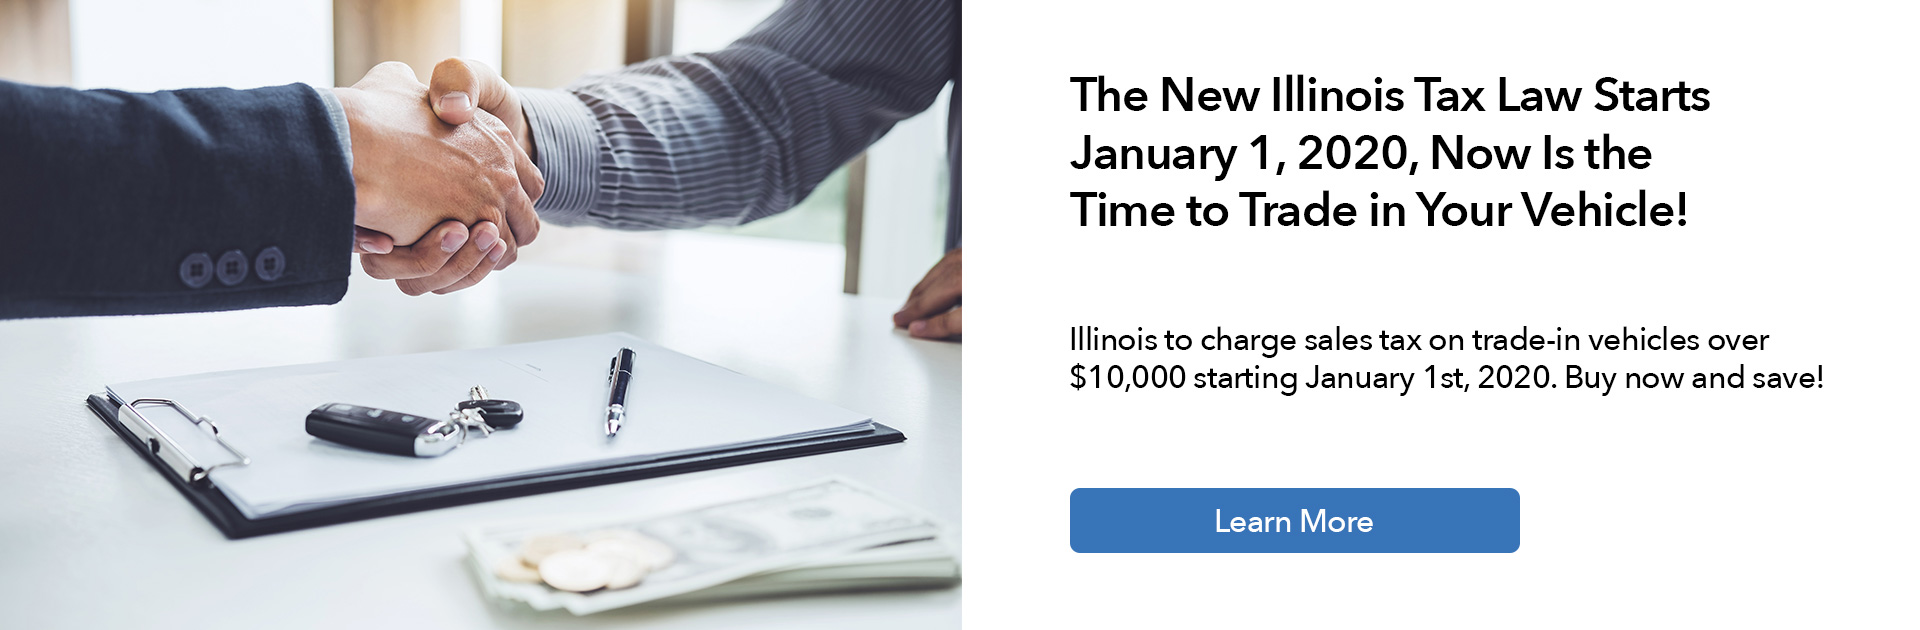 Illinois Tax Law Hero 1